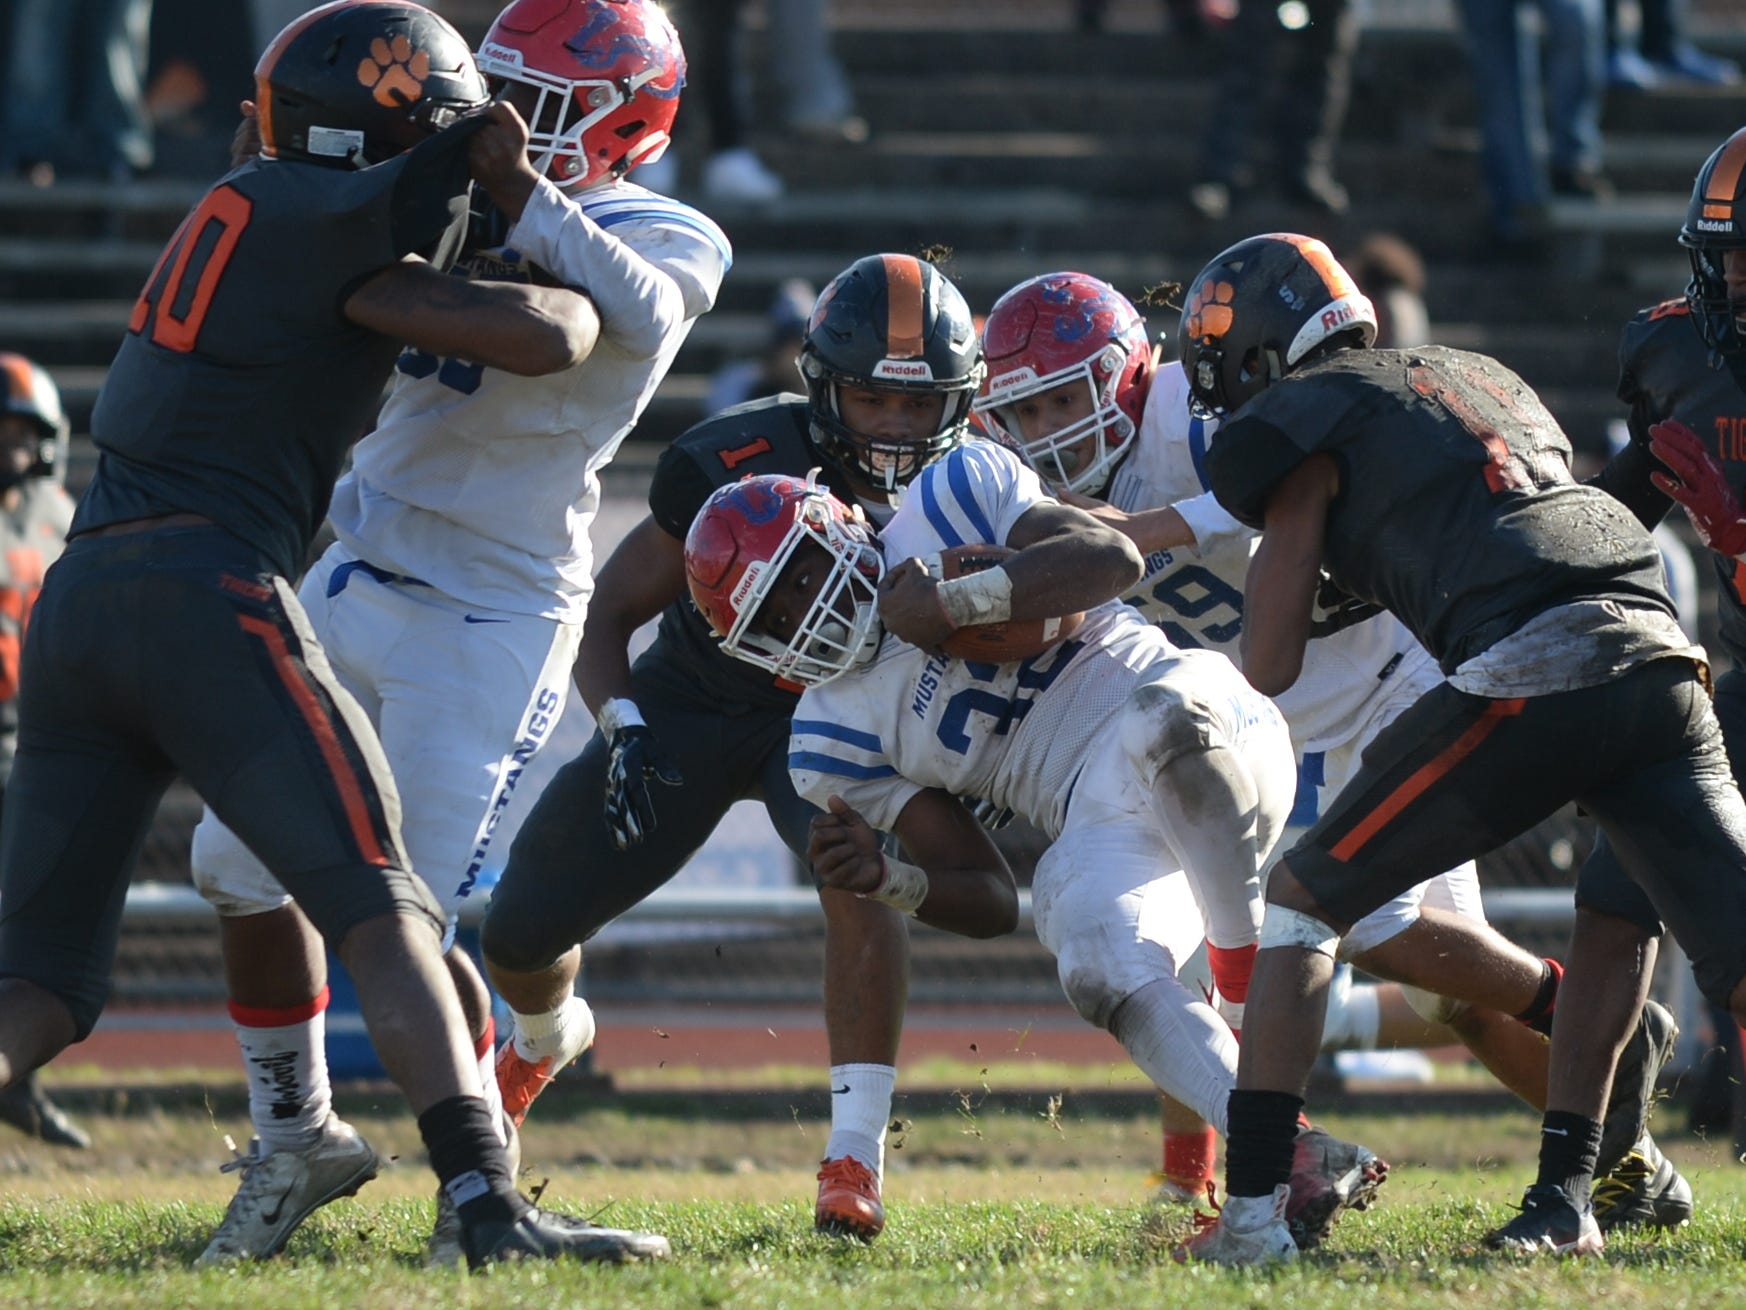 Triton vs. Woodrow Wilson football, South Jersey Group 3 first round, Saturday, Nov. 3, 2018.